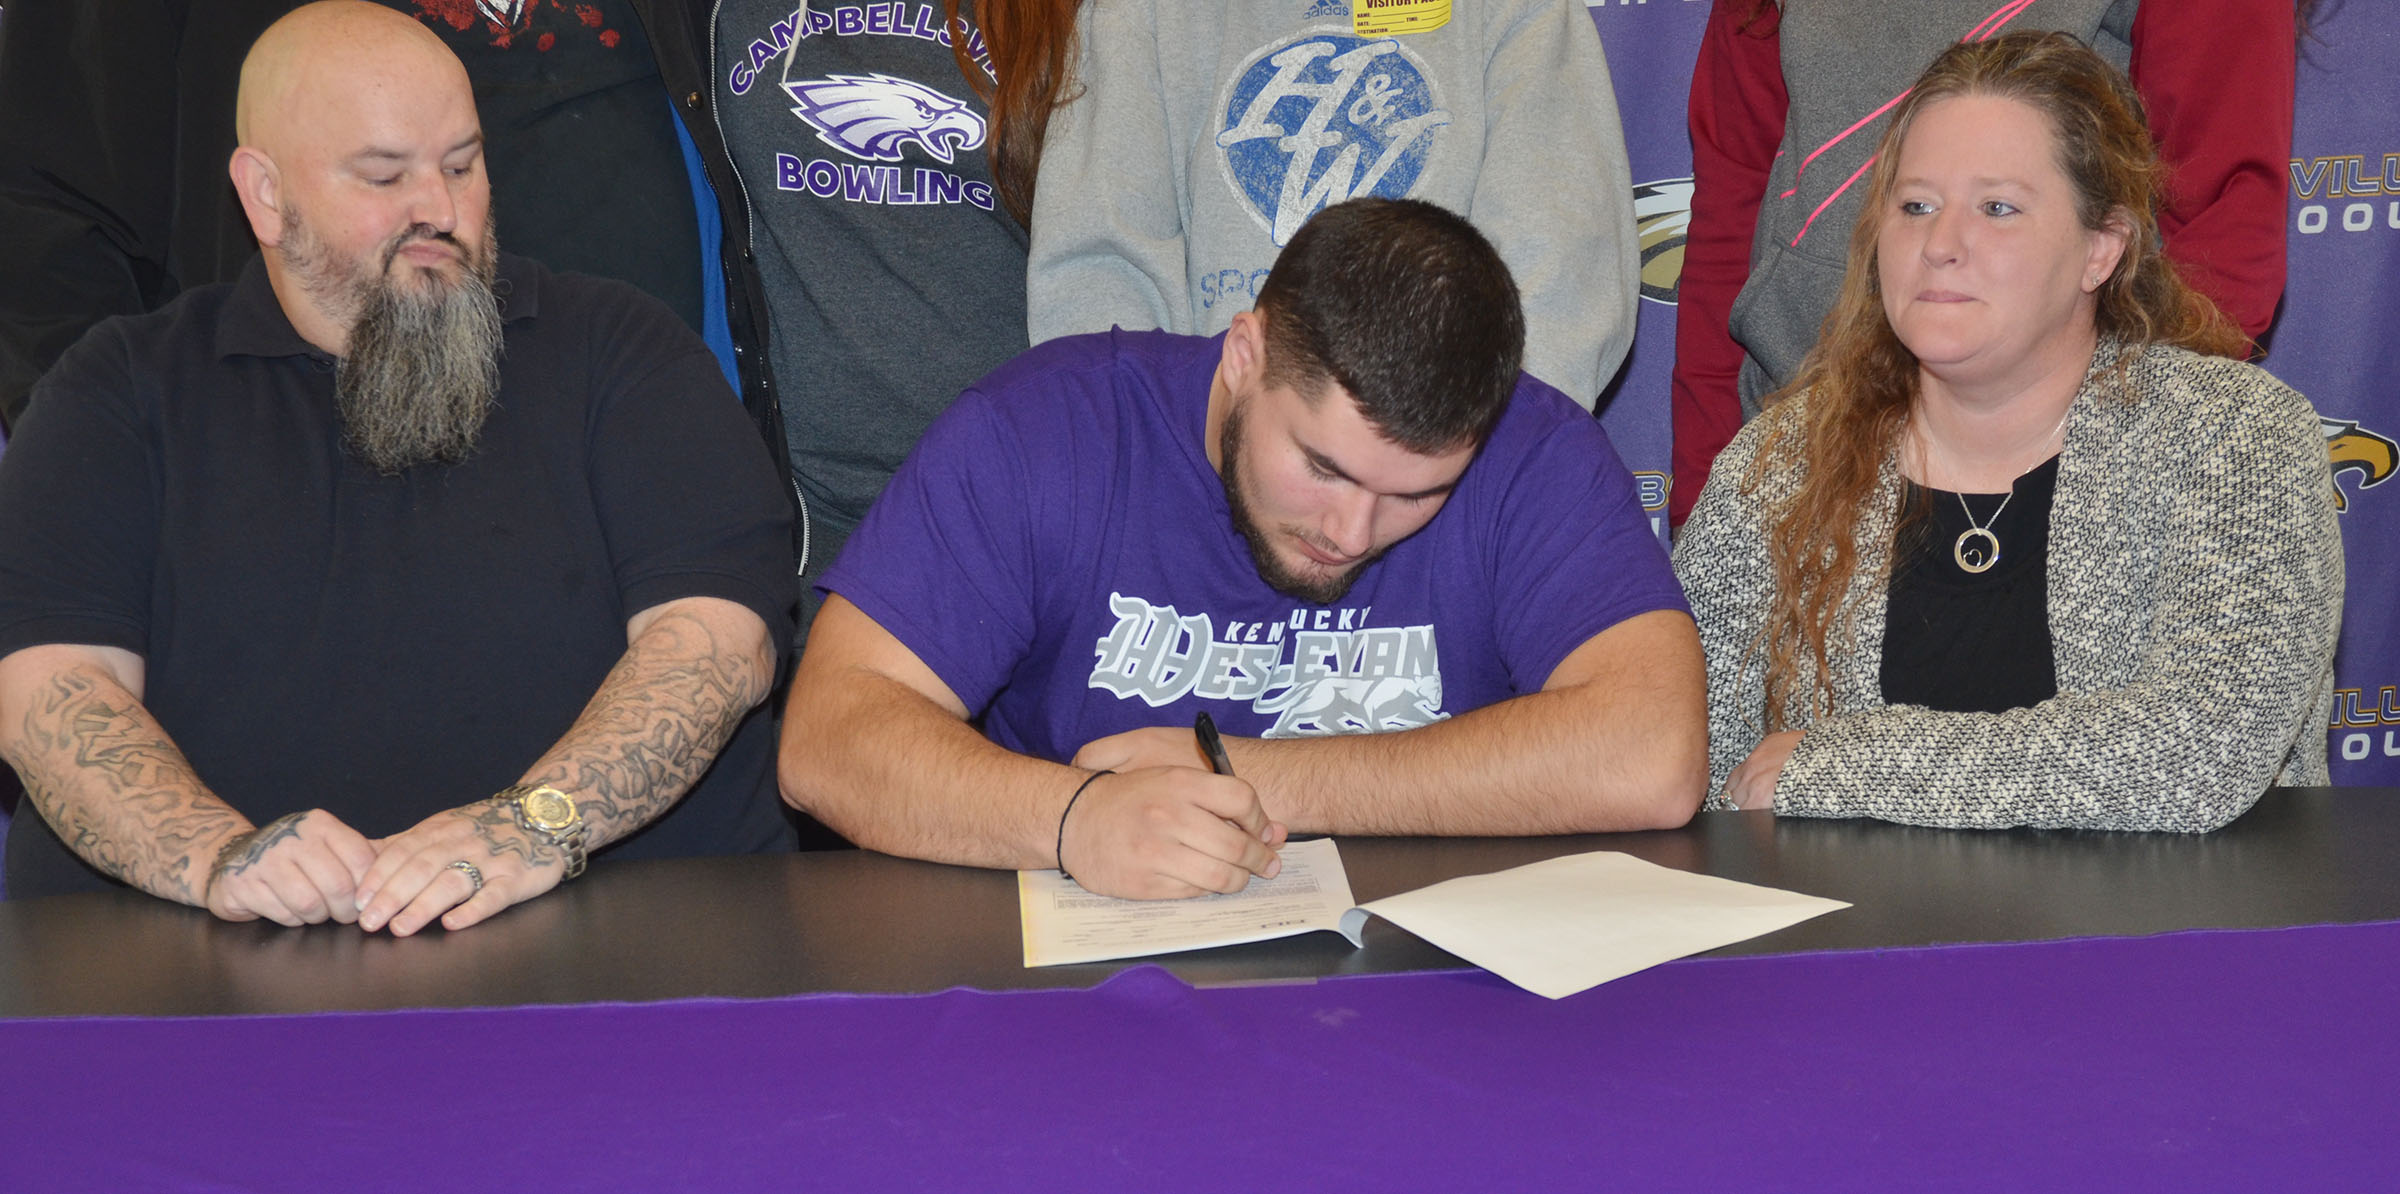 Campbellsville High School football player Logan Brown will continue his academic and football career at Kentucky Wesleyan College this fall. He officially signed his letter of intent on Wednesday, Feb. 1, which was National Signing Day. From left are stepfather Johnny Welch, Logan, and his mother, Krissy Welch.